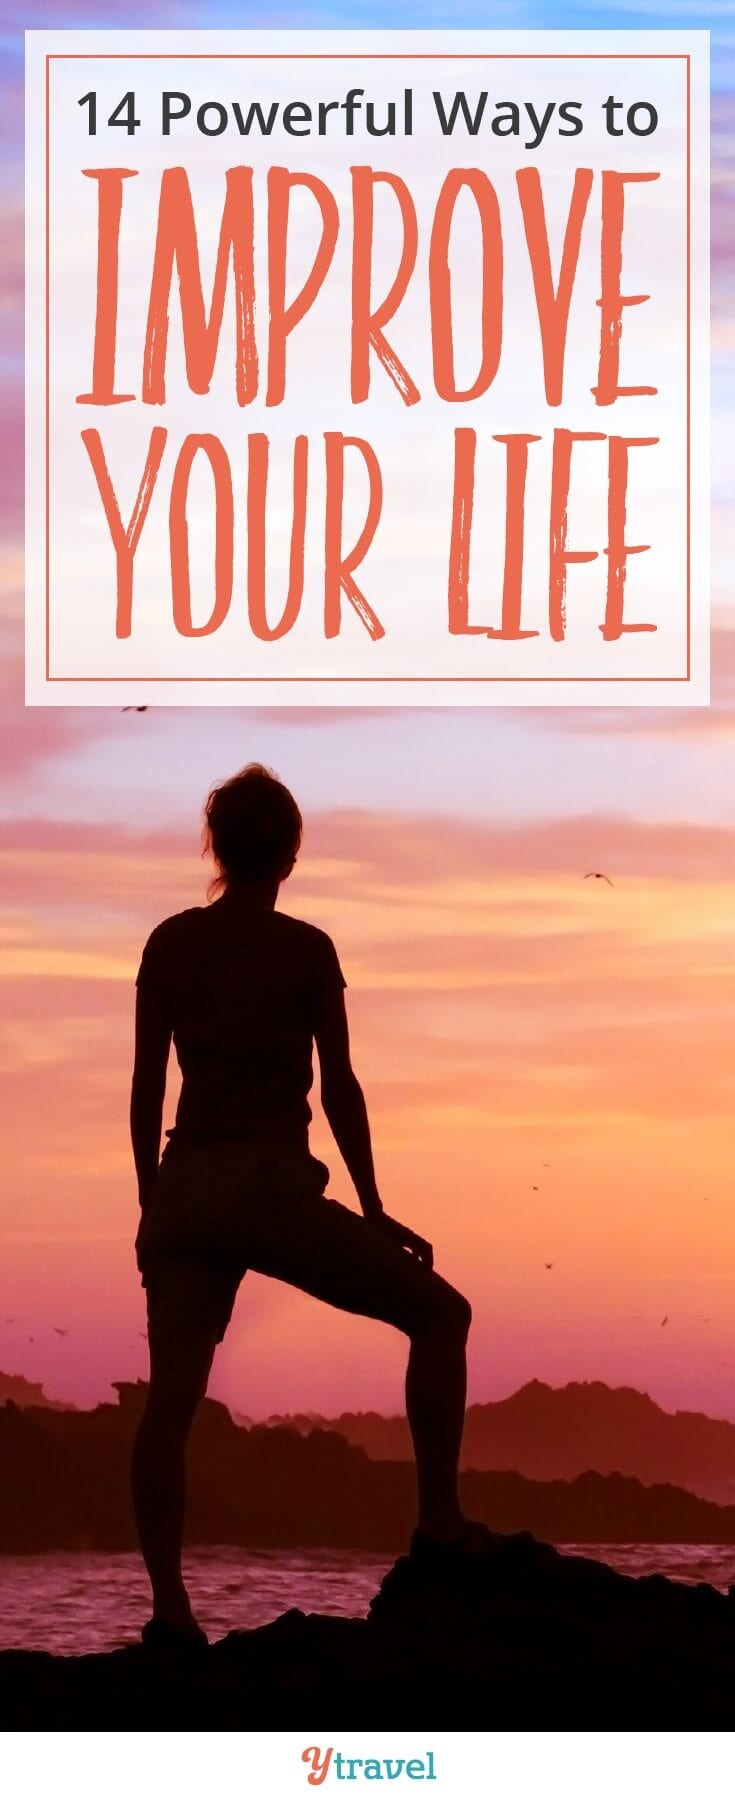 Are you looking for ways to improve your life? These simple yet powerful ways will help you achieve your goals, improve your mindset, attract more wealth and become a confident creator of any dream. Happy pinning #achievegoals #goals #life #change